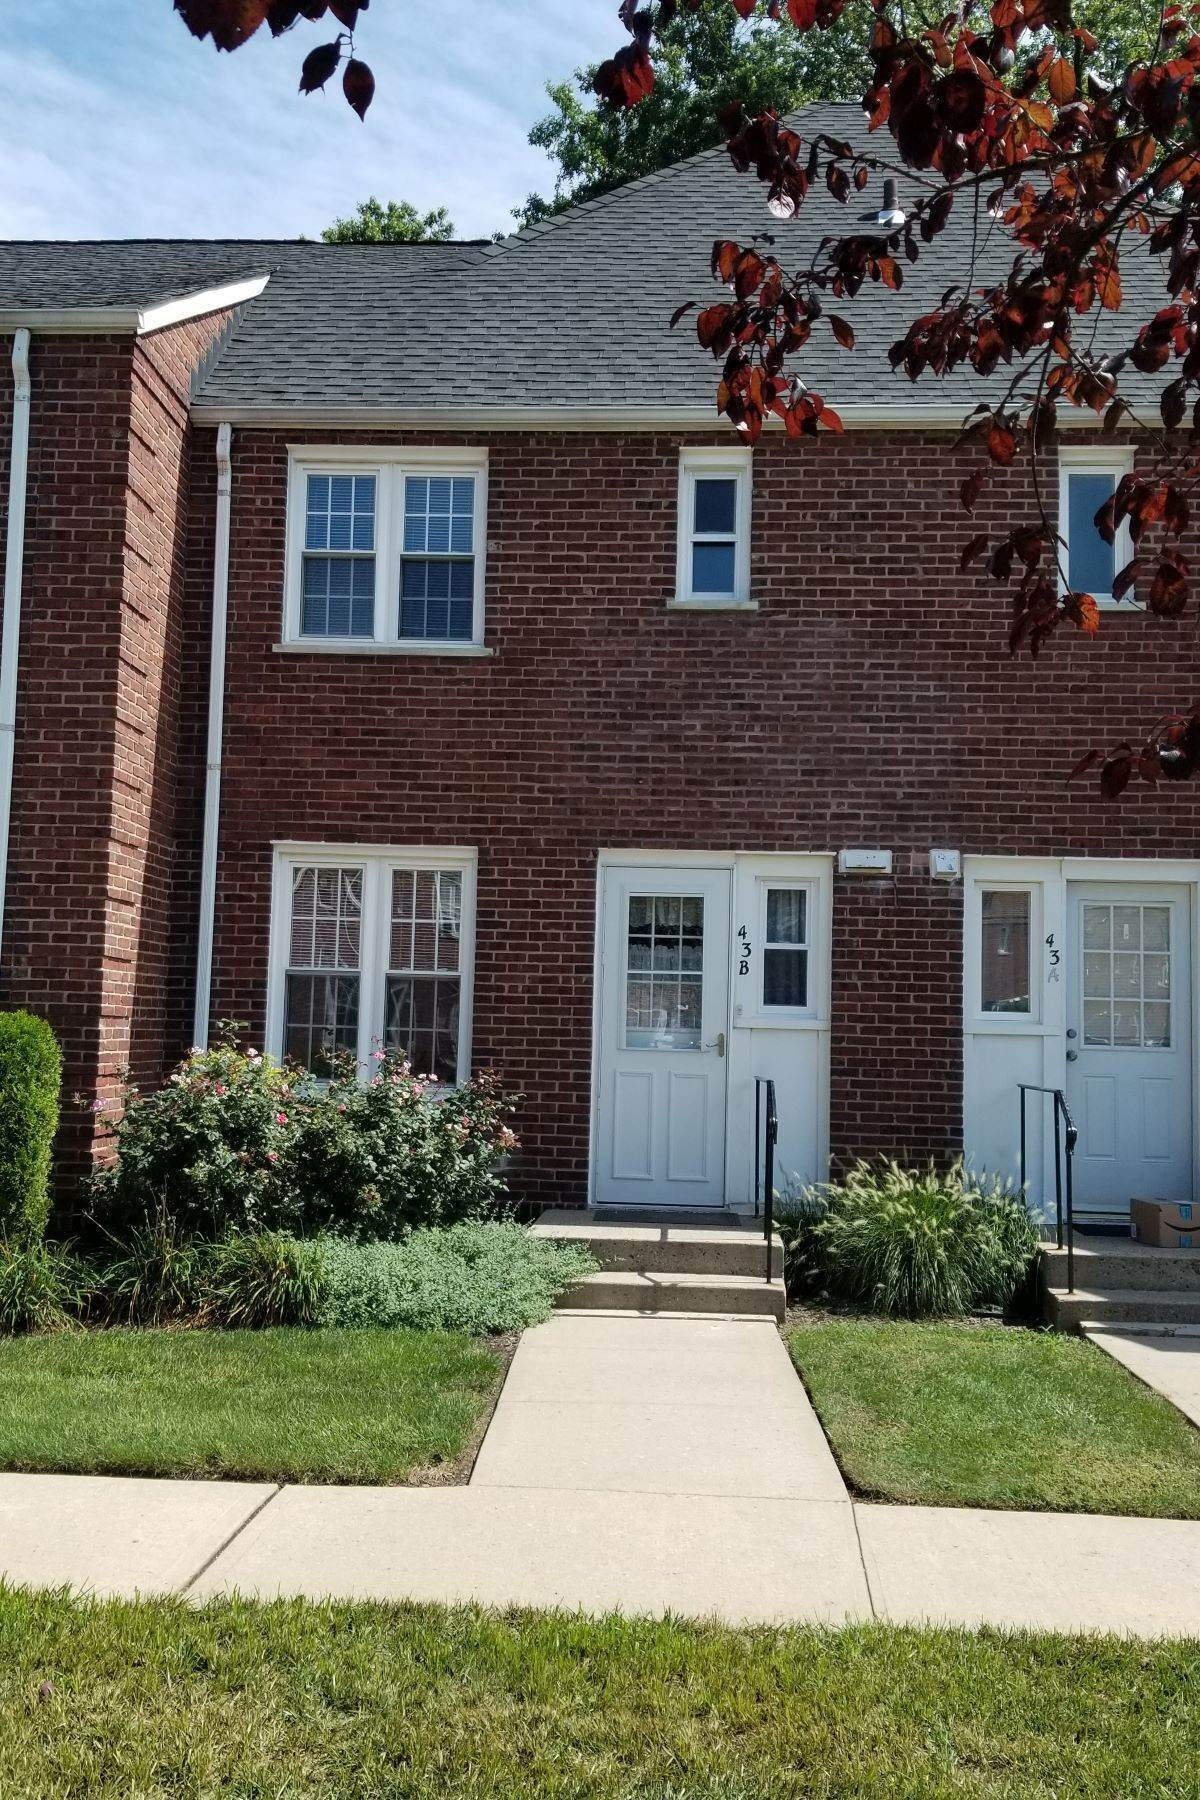 townhouses lúc Two Bedroom Townhouse 43 Parkway Village, #B Cranford, New Jersey 07016 Hoa Kỳ